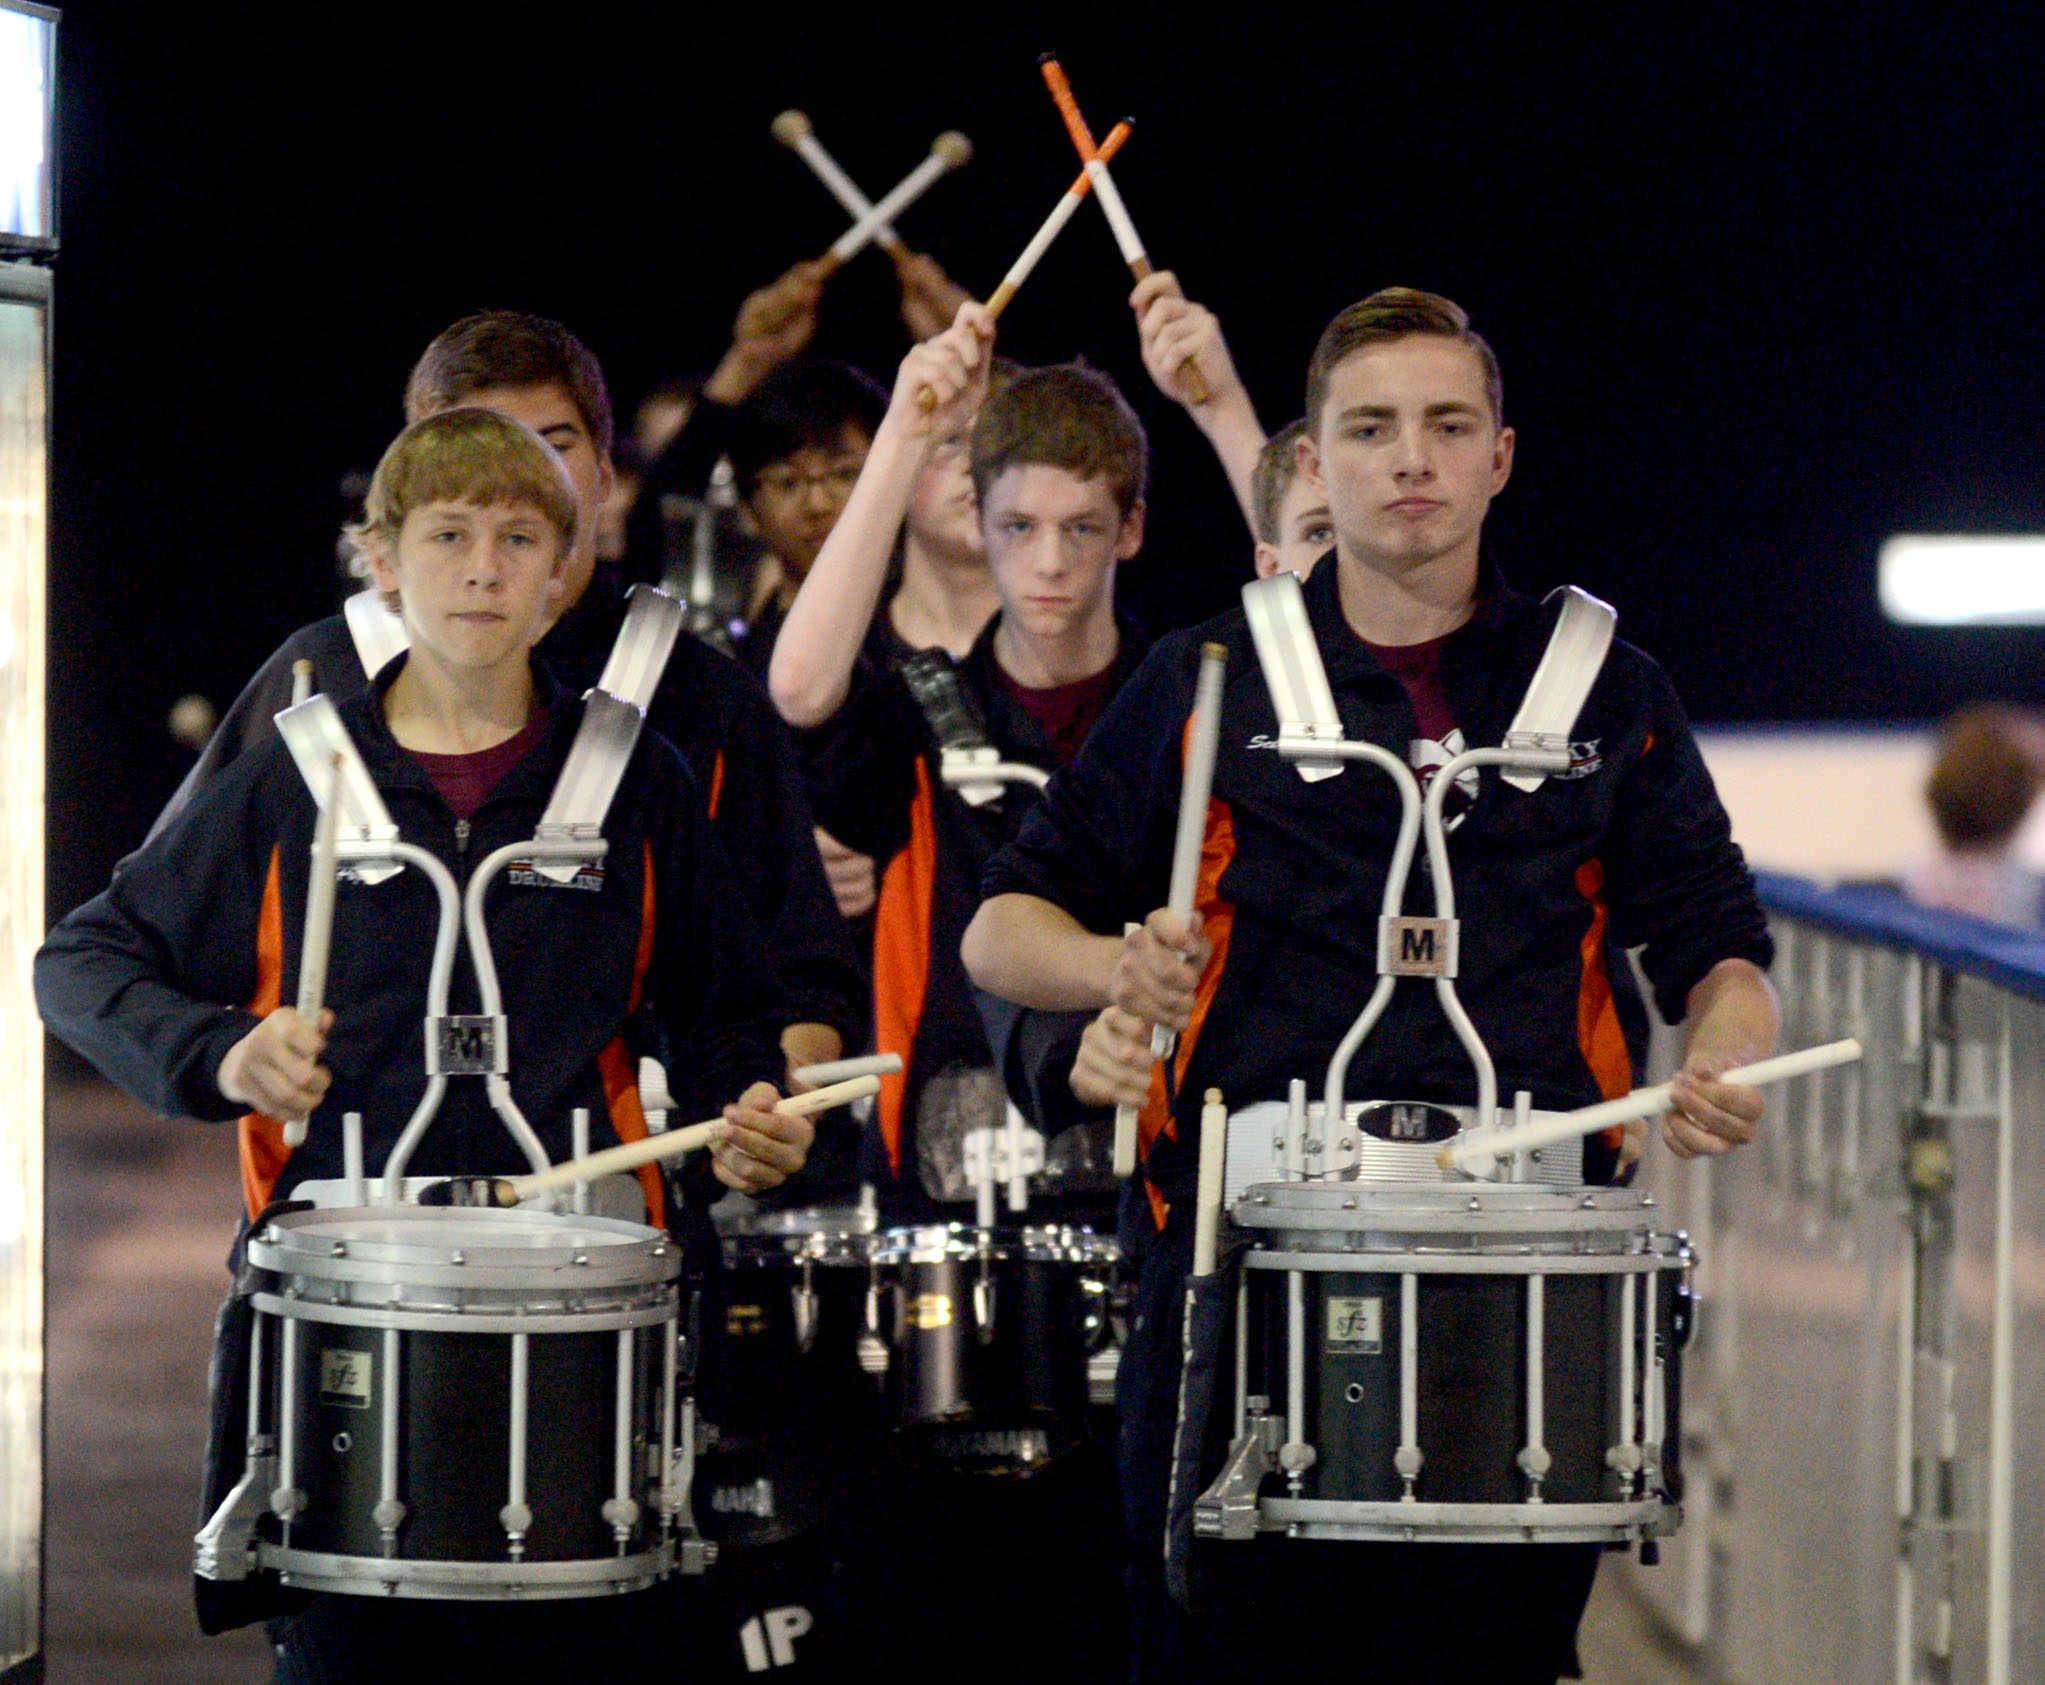 Drumline musicians from Hersey High School opened and closed the show Sunday during the Daily Herald Prep Excellence awards banquet at the Sears Centre Arena in Hoffman Estates.